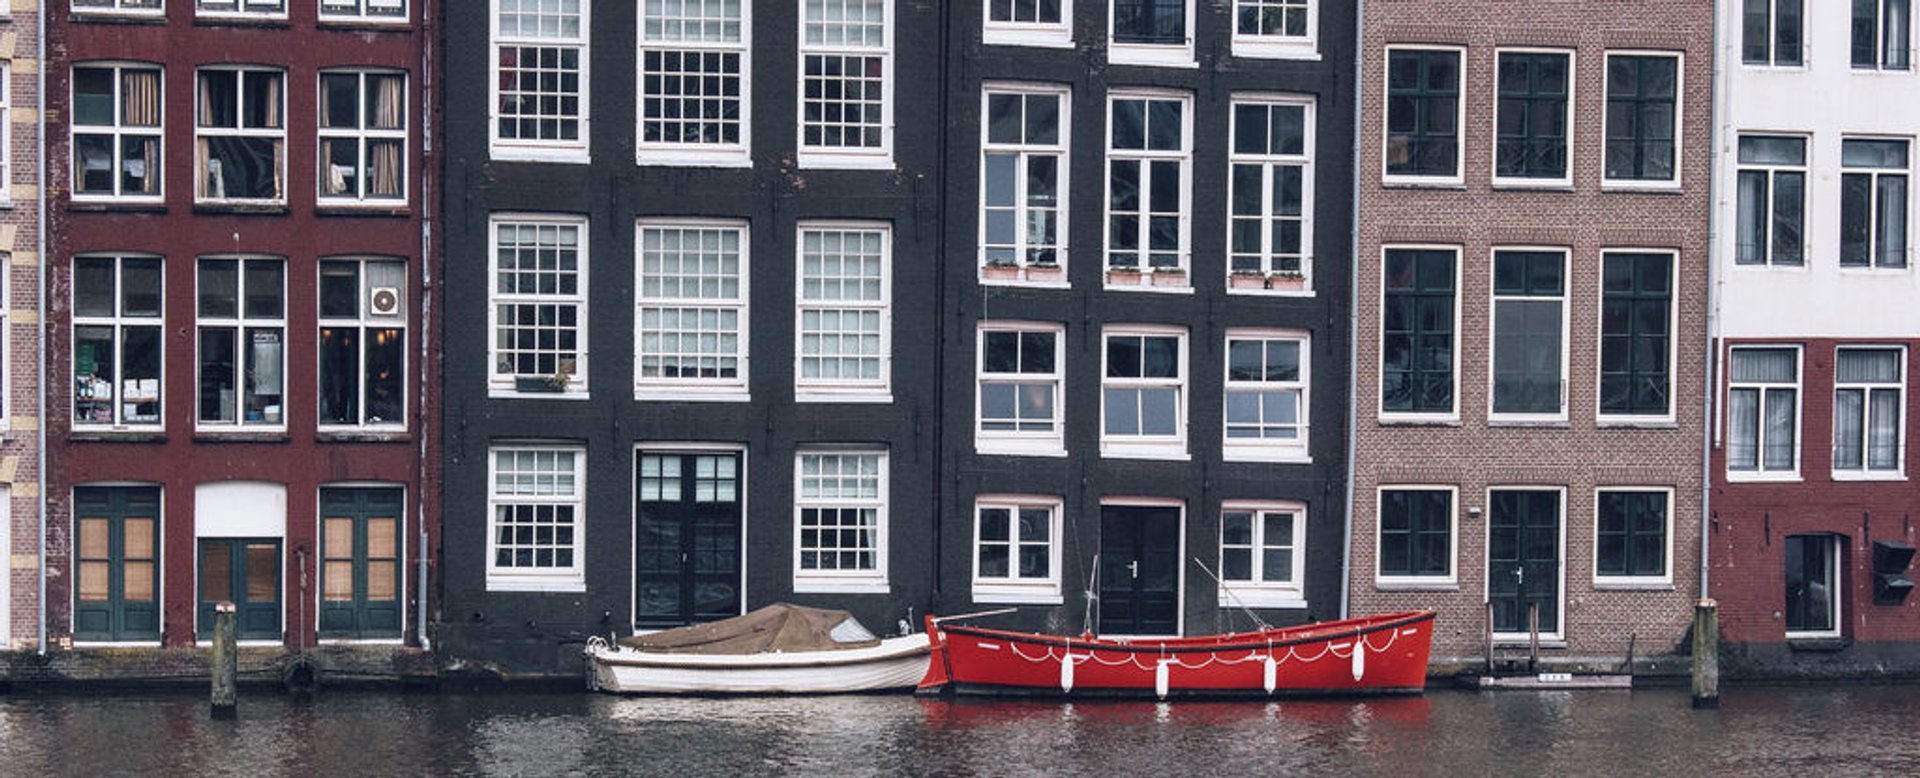 Canal Cruising in Amsterdam - Best Season 2020